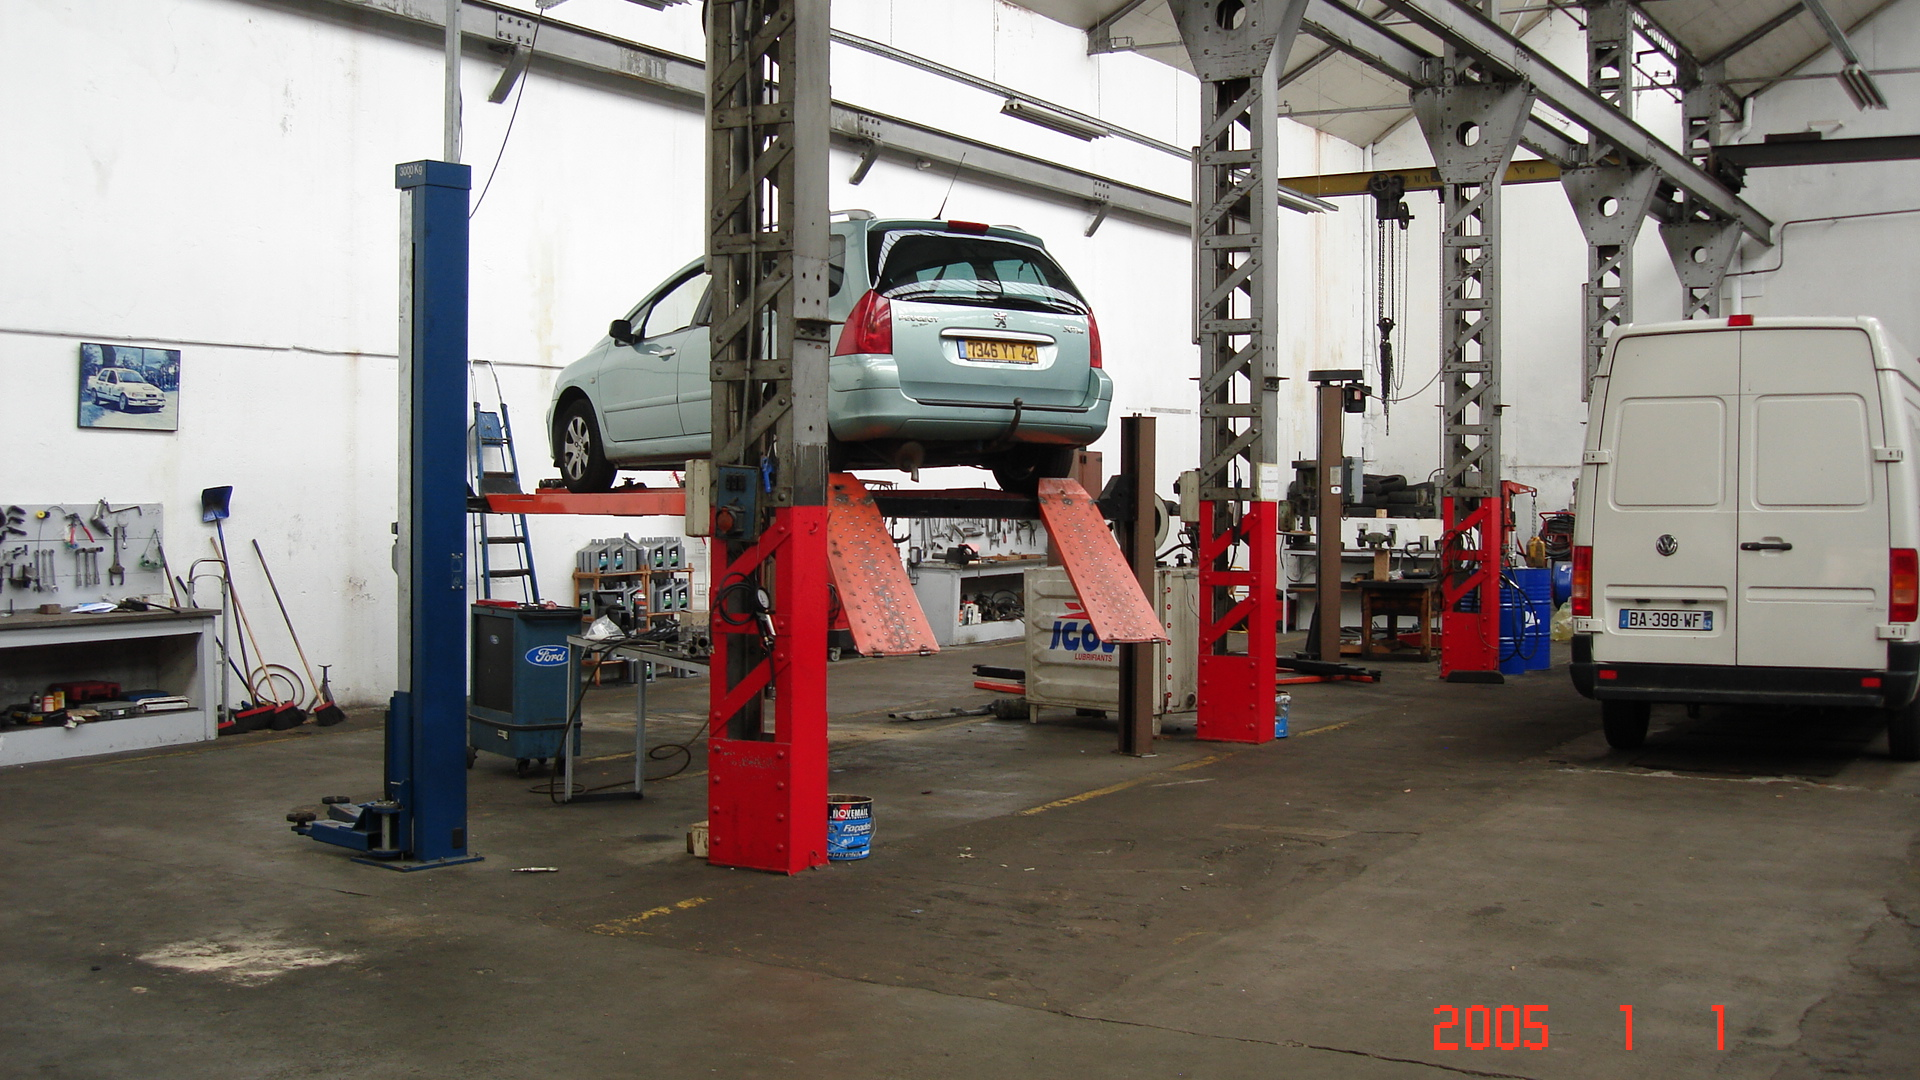 Comment trouver un bon garage pr s de chez soi voiture for Garage suquet auto